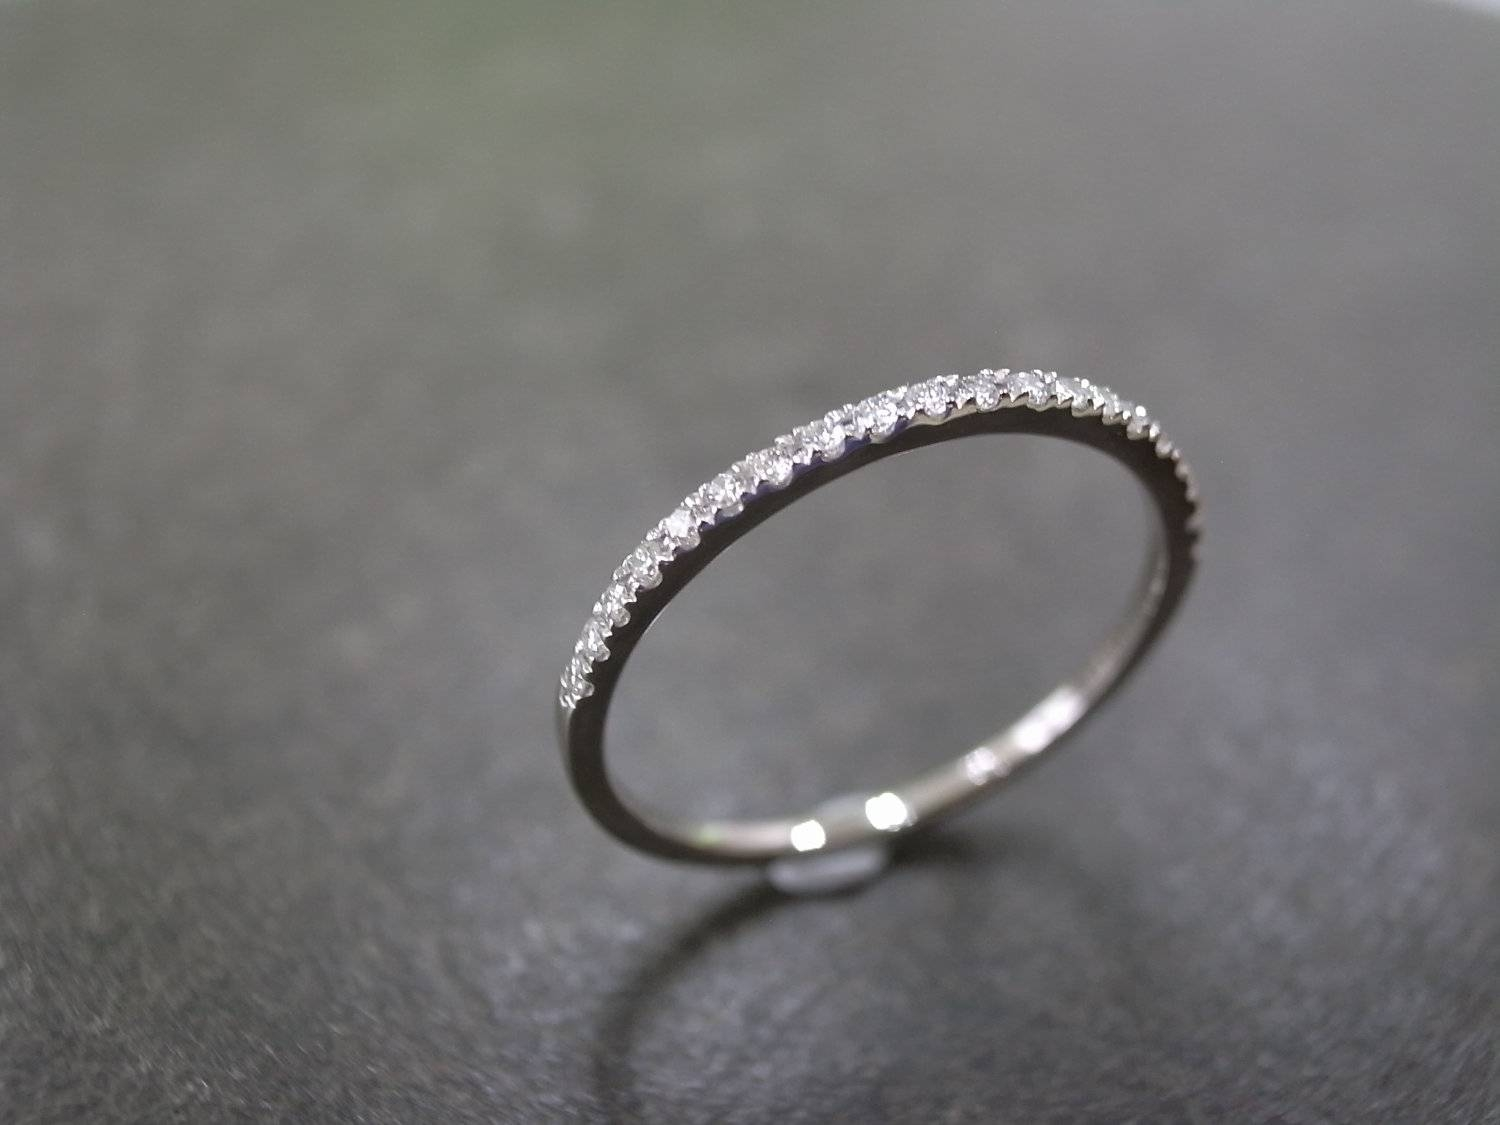 1.5Mm Diamond Wedding Band In 14K White Gold Thin Ring With Regard To  (View 1 of 15)